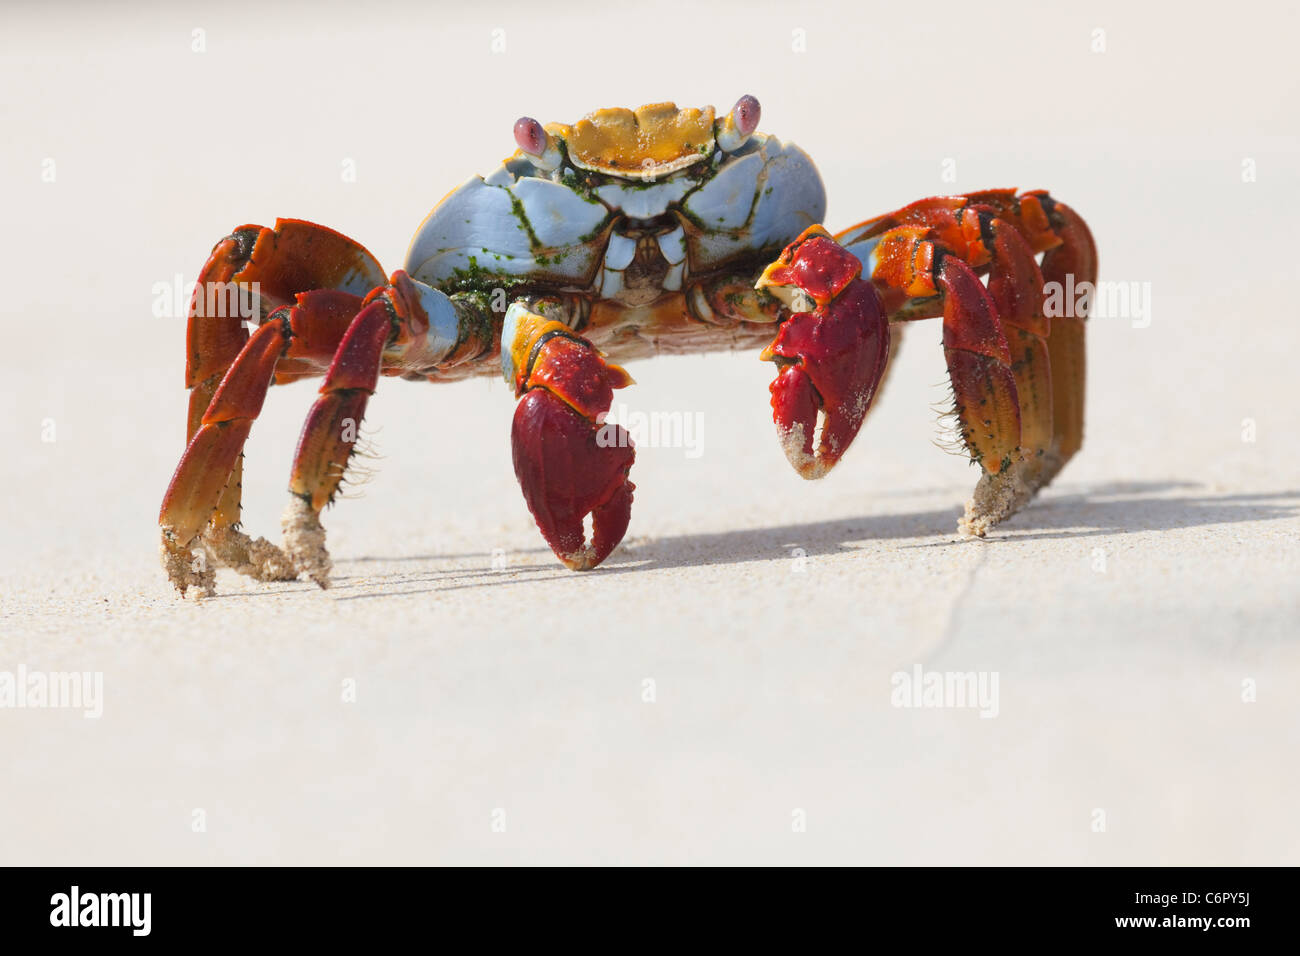 Sally Lightfoot Crab (Grapsus grasps) on the beach in Galapagos National Park - Stock Image